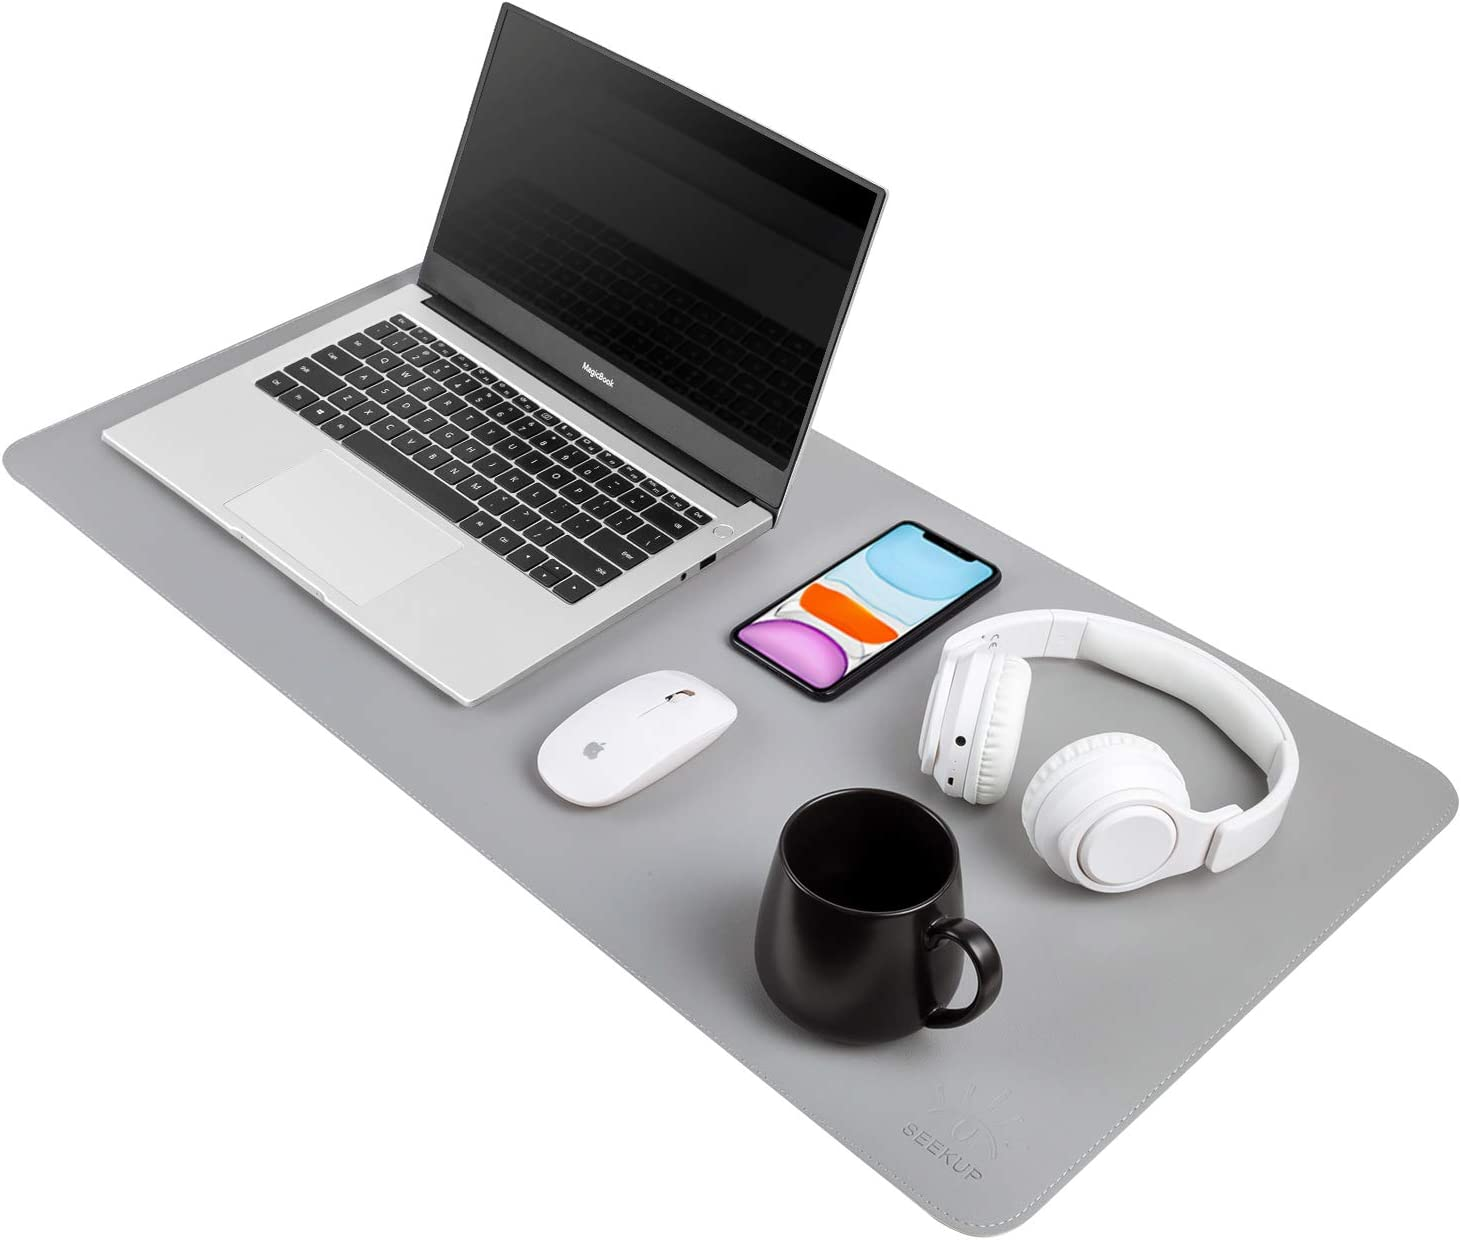 """Gray/Silver Dual Sided PU Leather Desk Pad, Upgrade Sewing Office Laptop Mat, Waterproof Large Mouse Pad, Non-Slip Writing Mat Desk Blotter Protector for Office/Home, 31.5""""x15.7"""""""